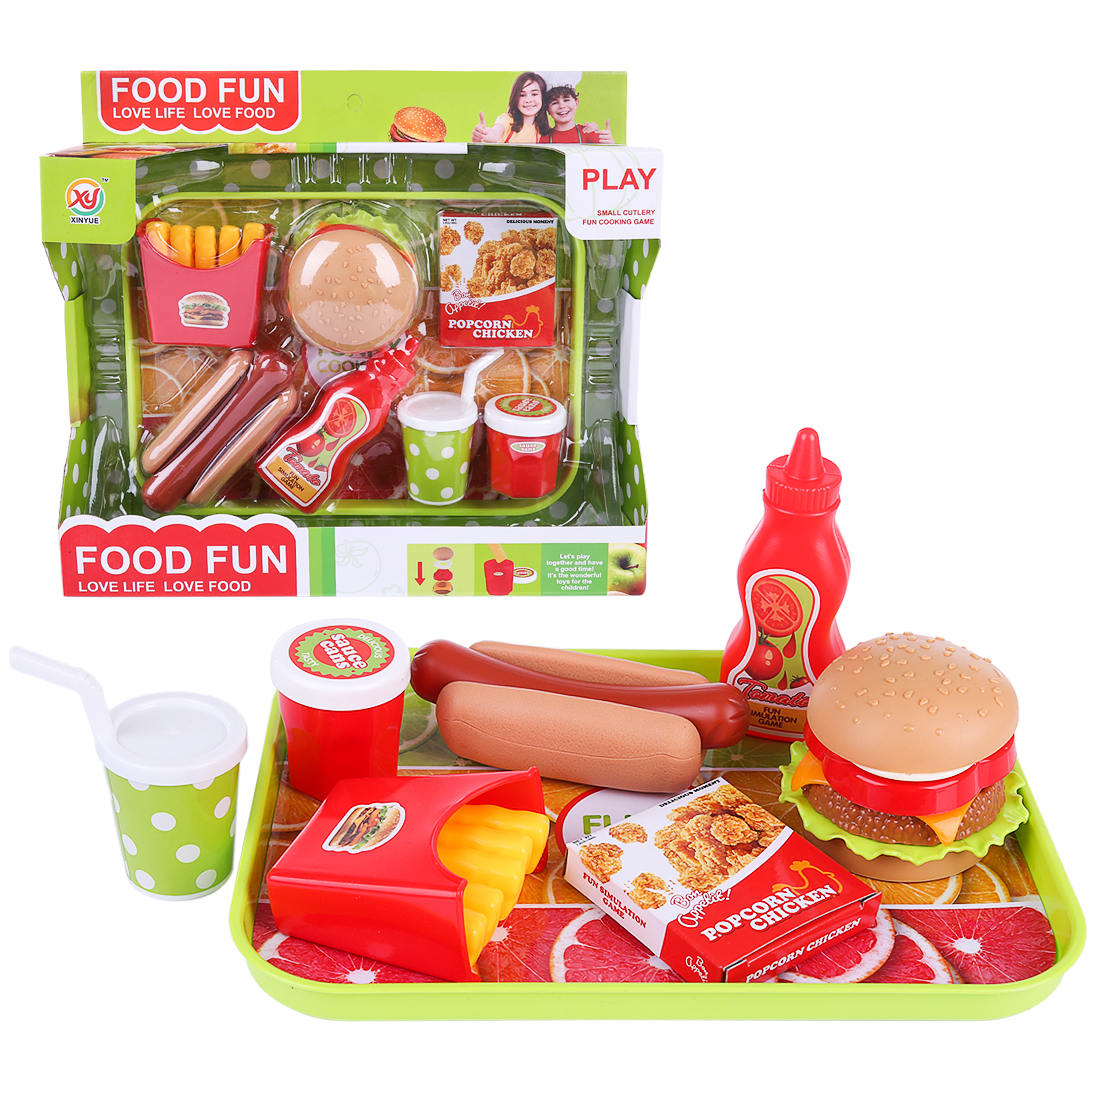 Pretend Play Toys & Hobbies Doll Pizza Hamburger Bread Fast Food Pretend Play Plastic Miniature Food Children Kitchen Cutting Toys Kids Education Toy Gift Volume Large